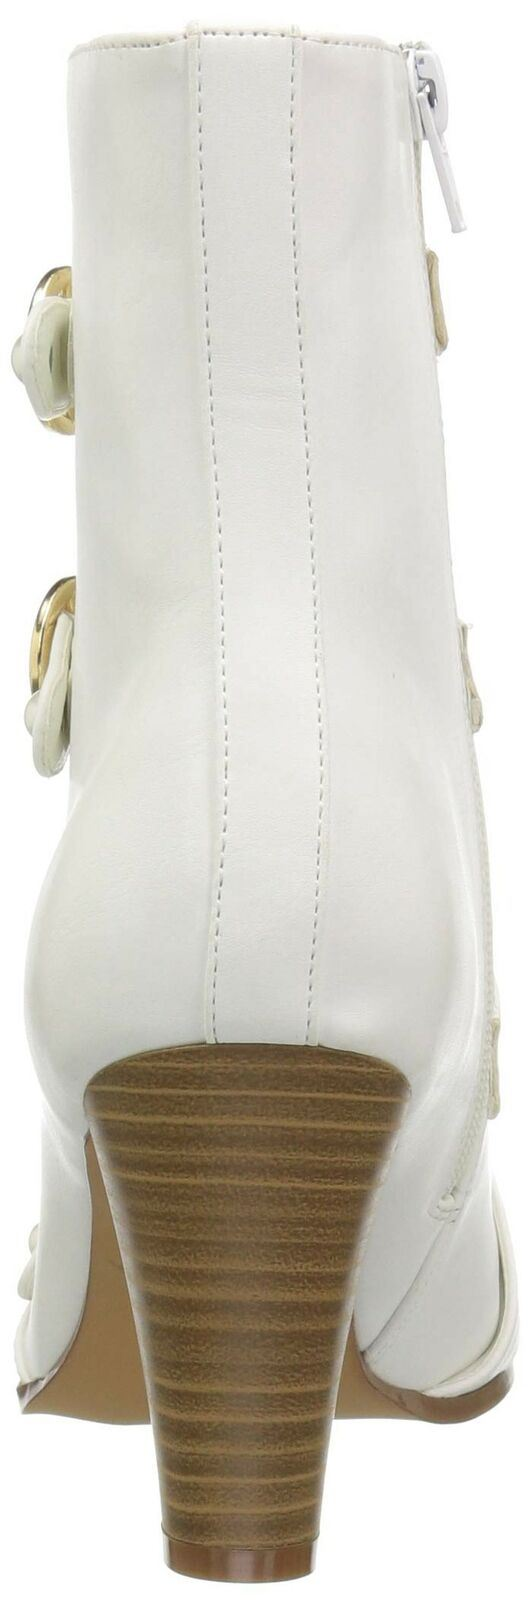 Penny Loves Kenny Women's ASAP Fashion Boot, White Shine Texture, 9 M US NEW